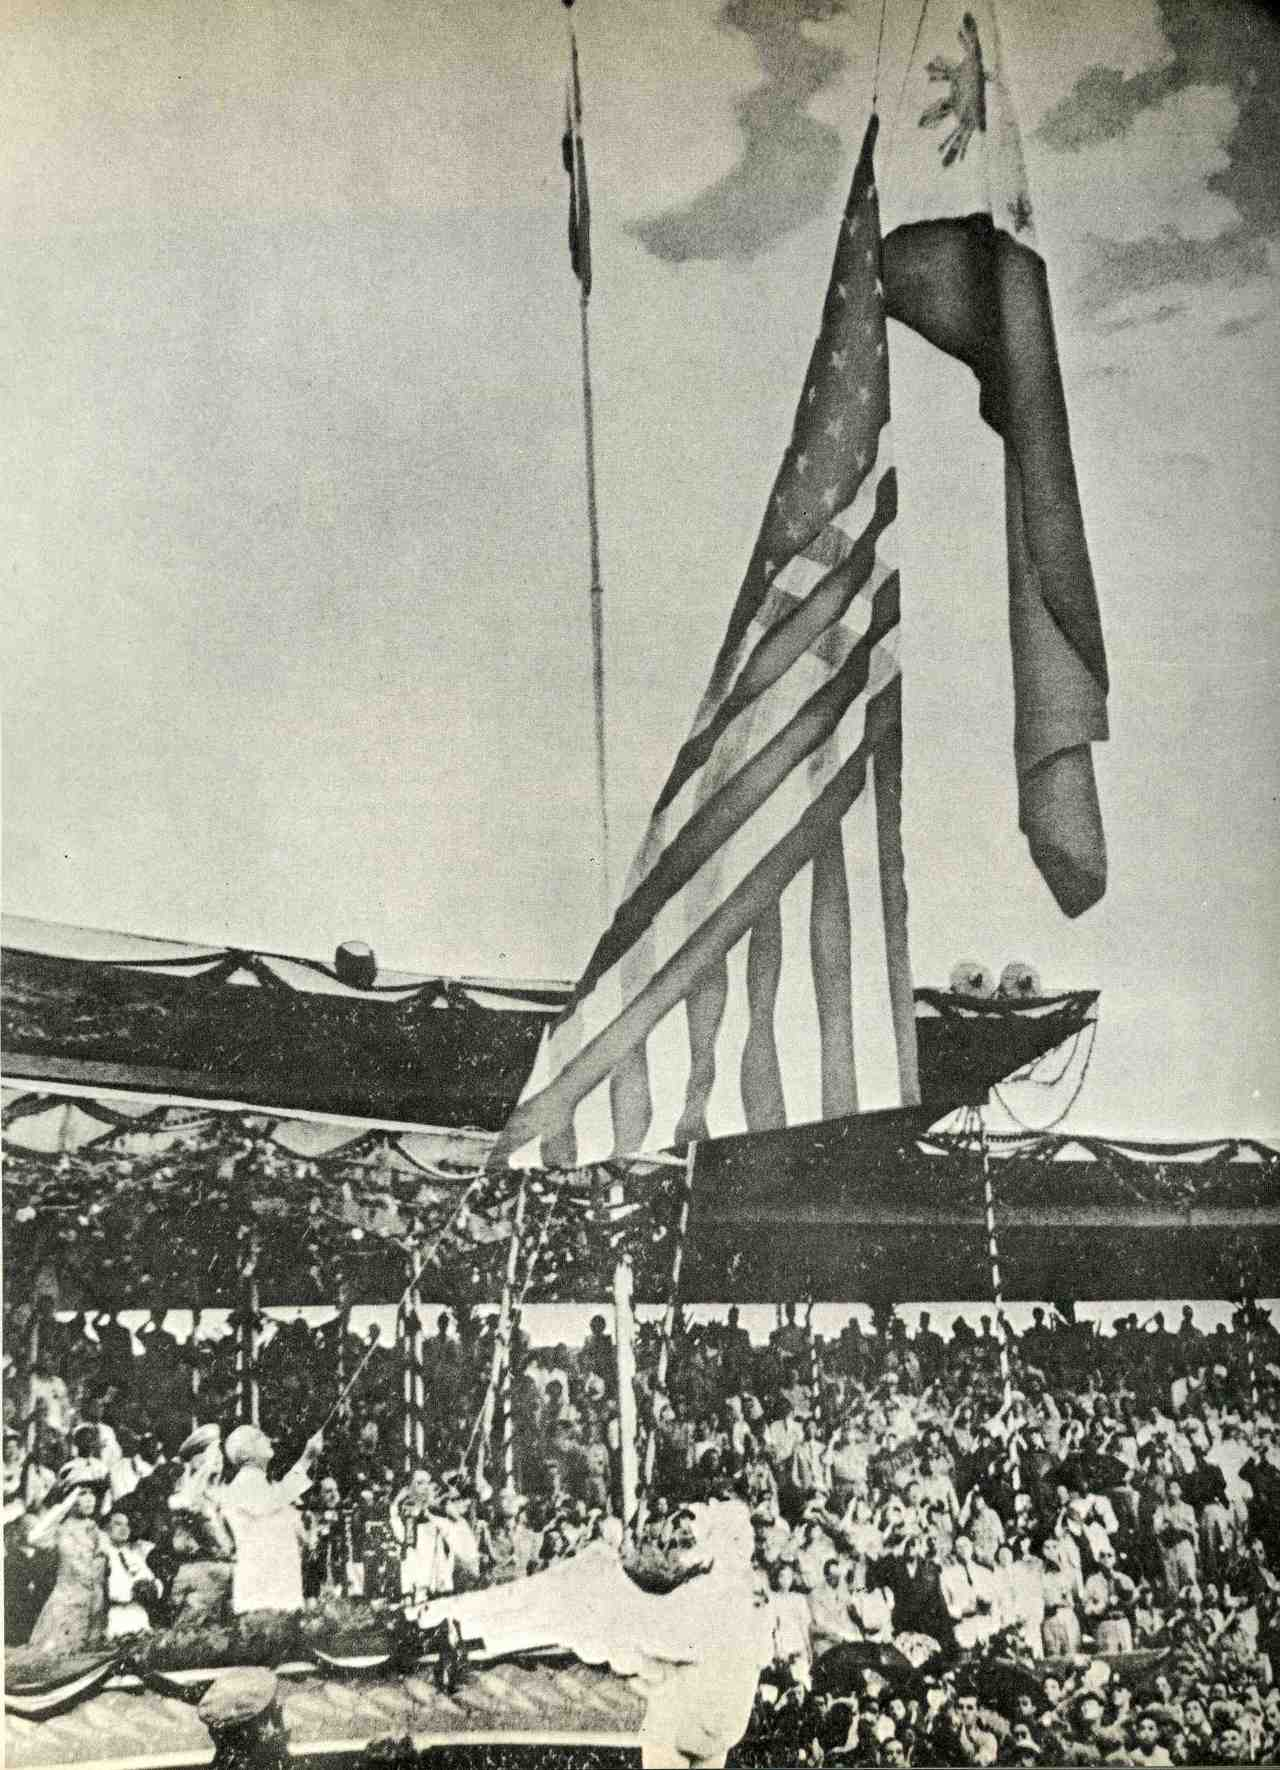 The Flag of the United States of America is lowered while the Flag of the Philippines is raised during the Independence Day ceremonies on July 4, 1946